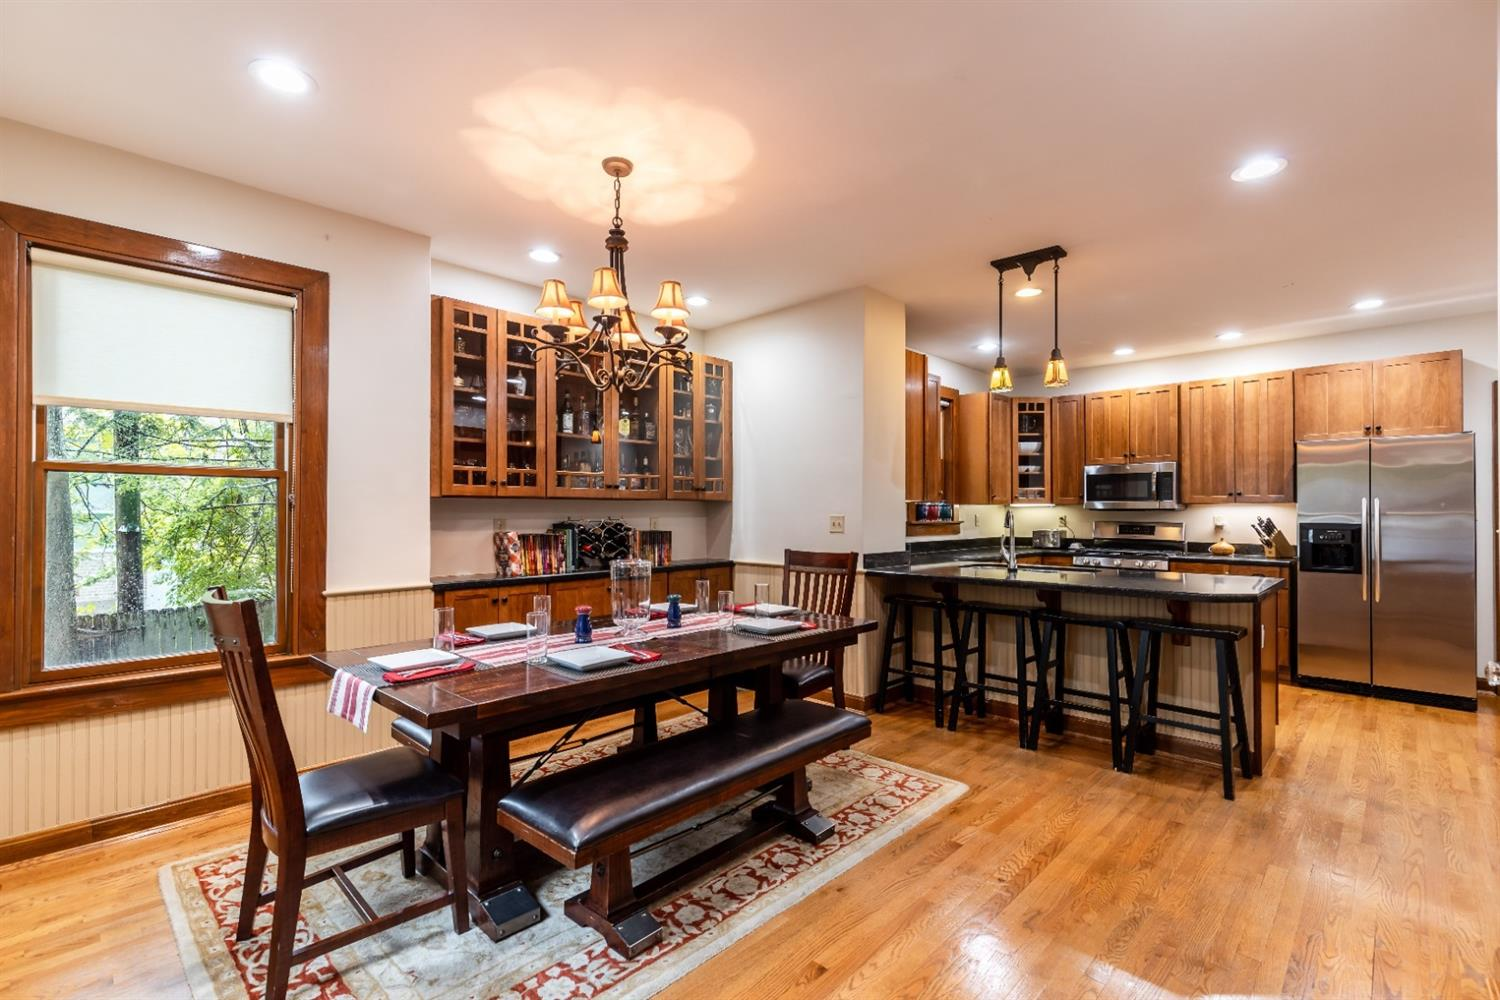 Spacious eat-in kitchen adjoins family room and dining room.  Stainless appliances, gas range, granite counter tops and wood cabinetry.